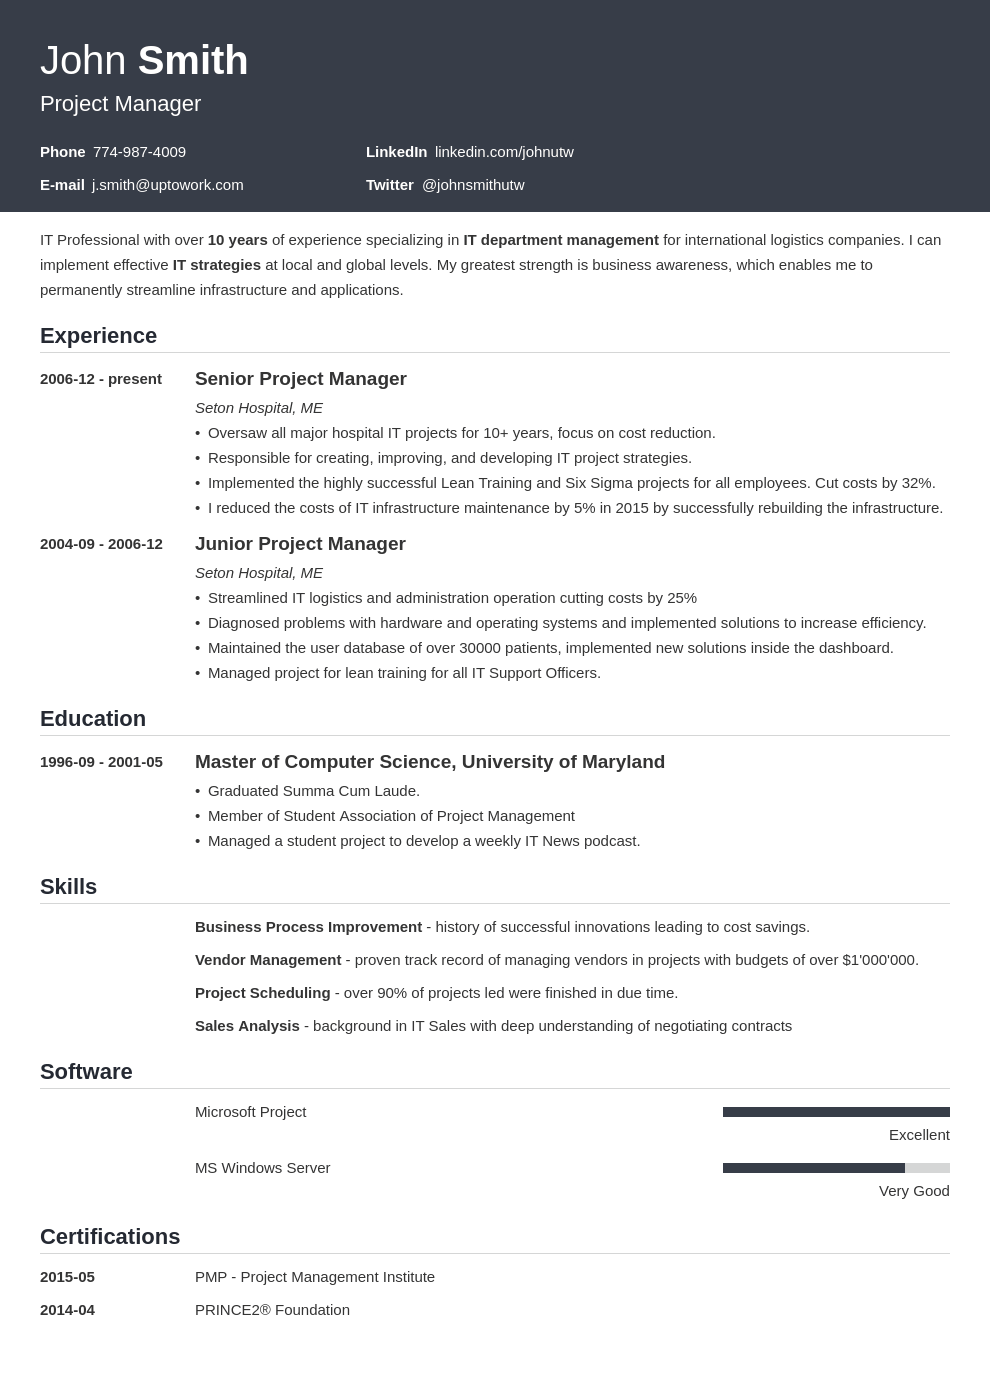 Best Resume Templates | 20 Resume Templates Download Create Your Resume In 5 Minutes